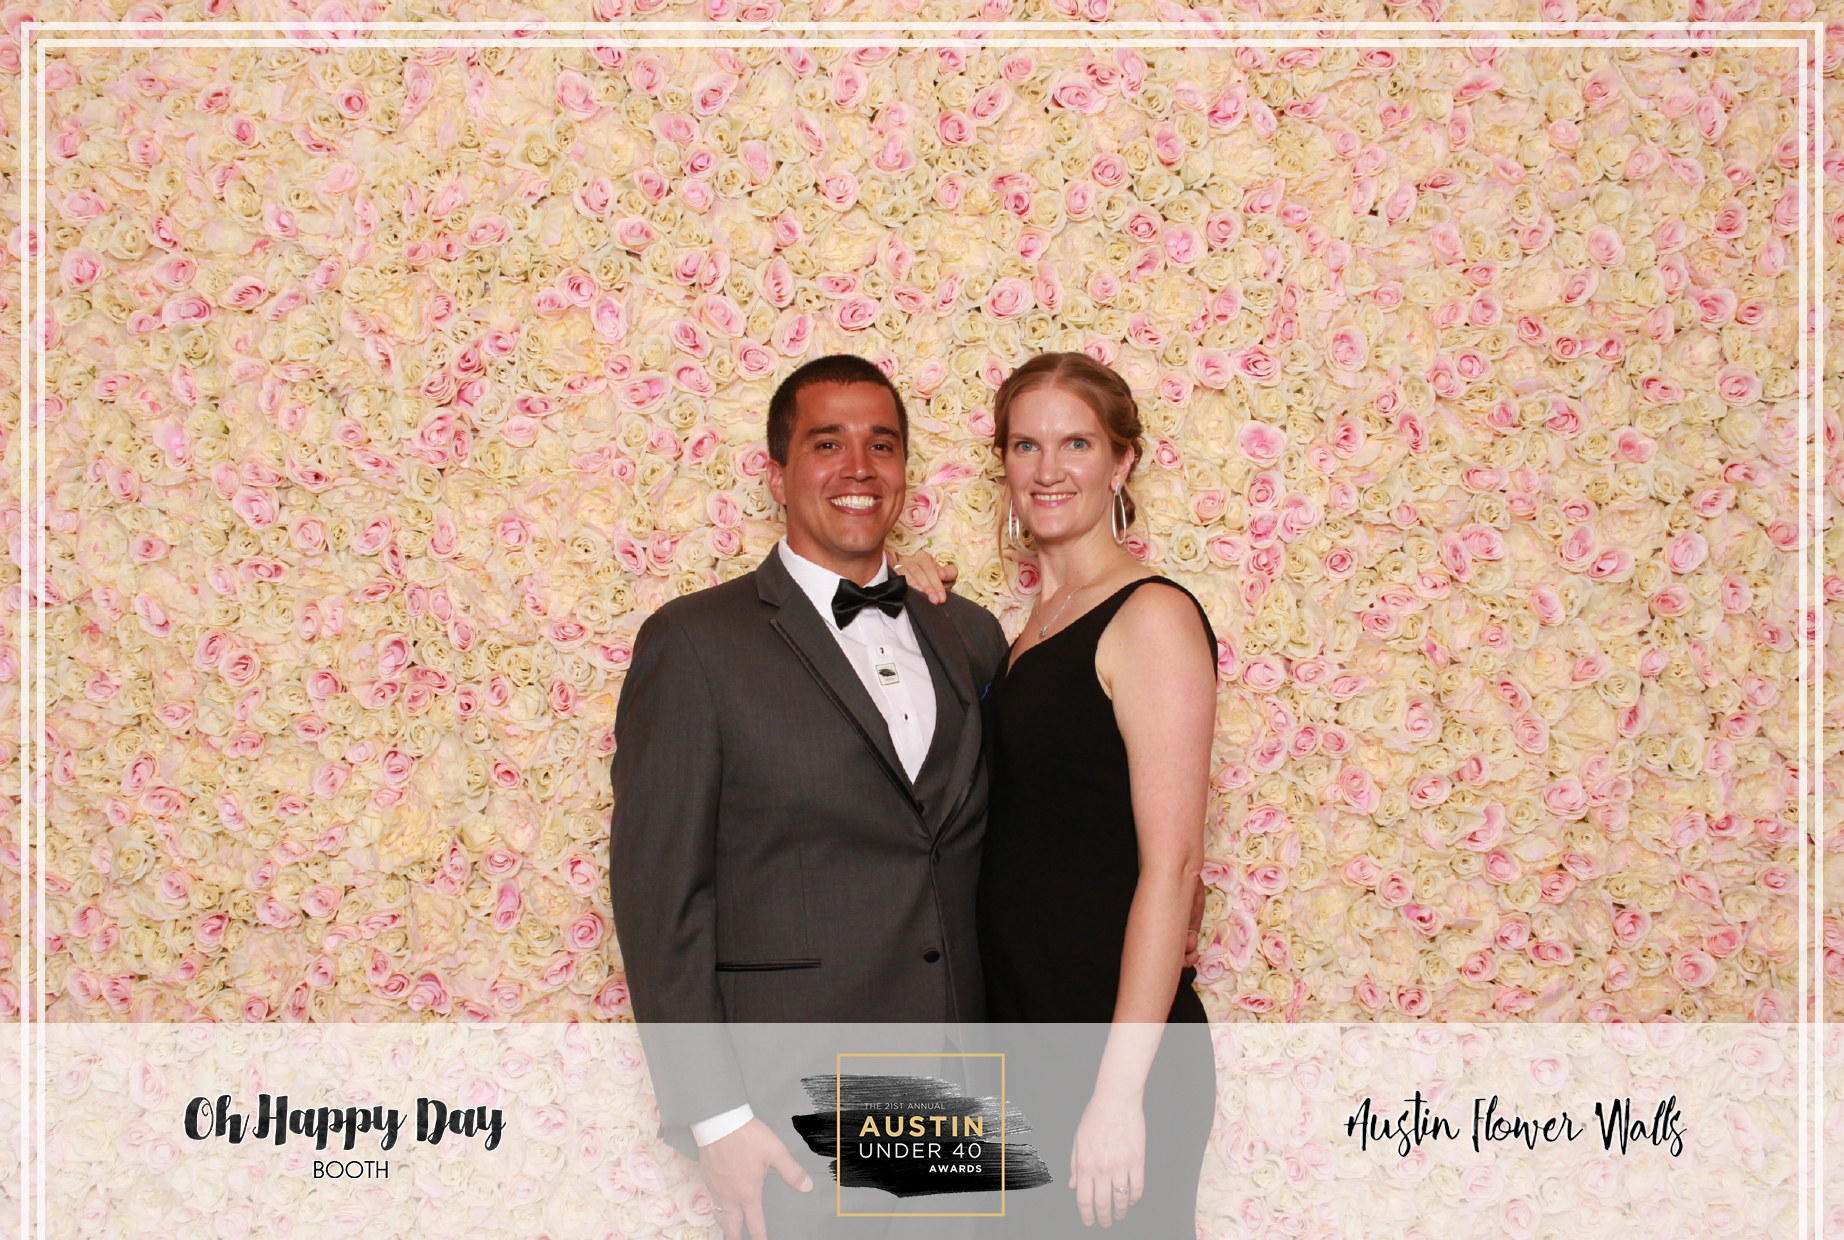 Oh Happy Day Booth - Austin Under 40-66.jpg